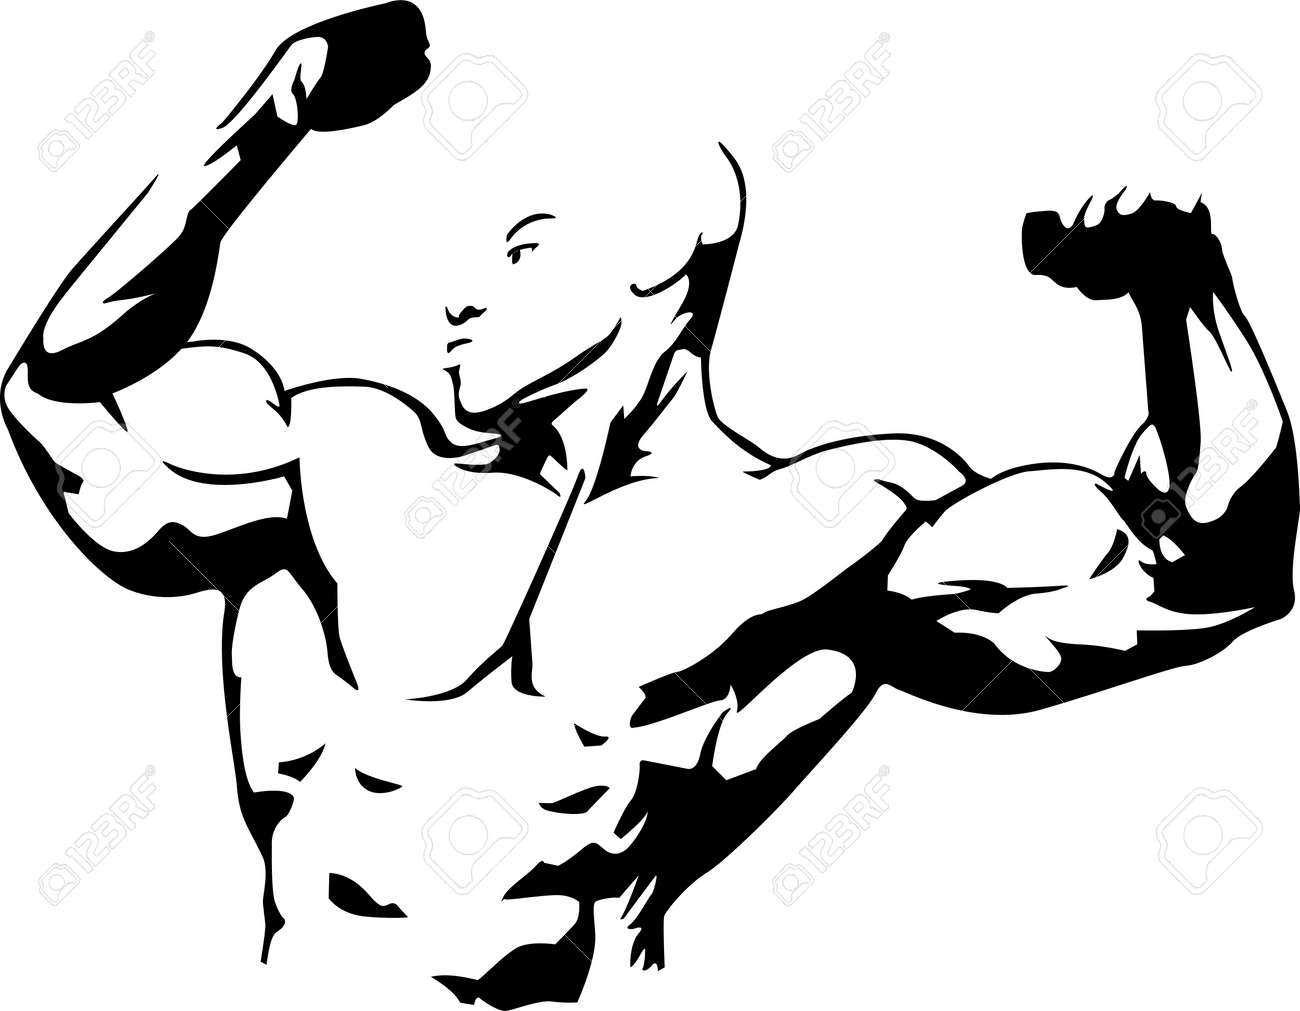 Human Muscle Vector Free – skipnation.info